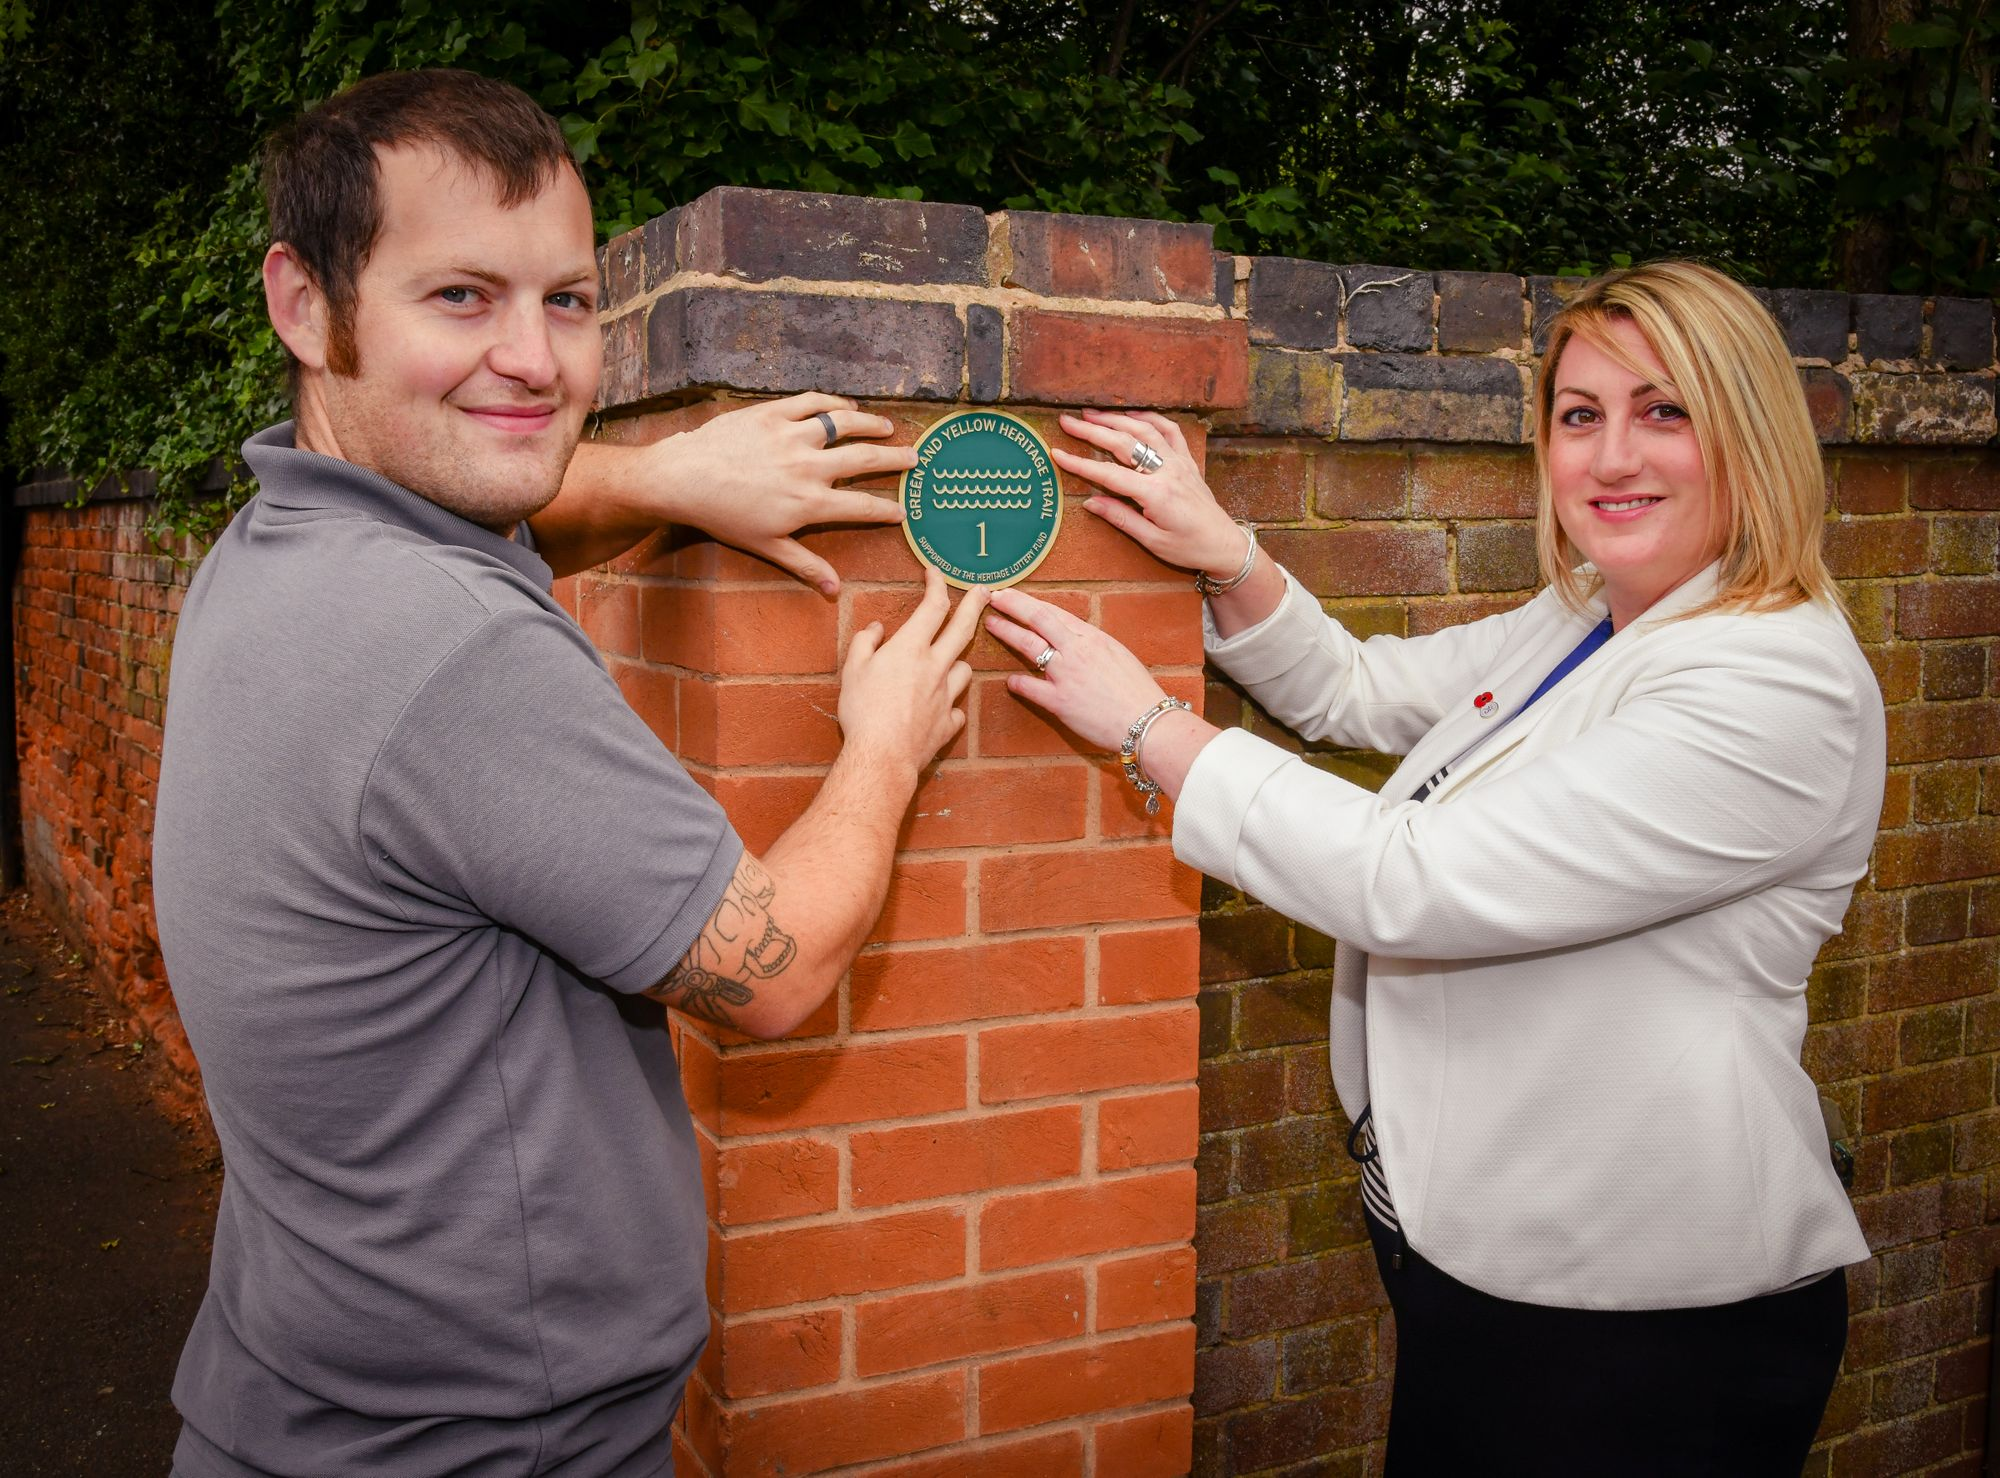 Central England Co-op masonry team help makes a mark on the history of Coleshill